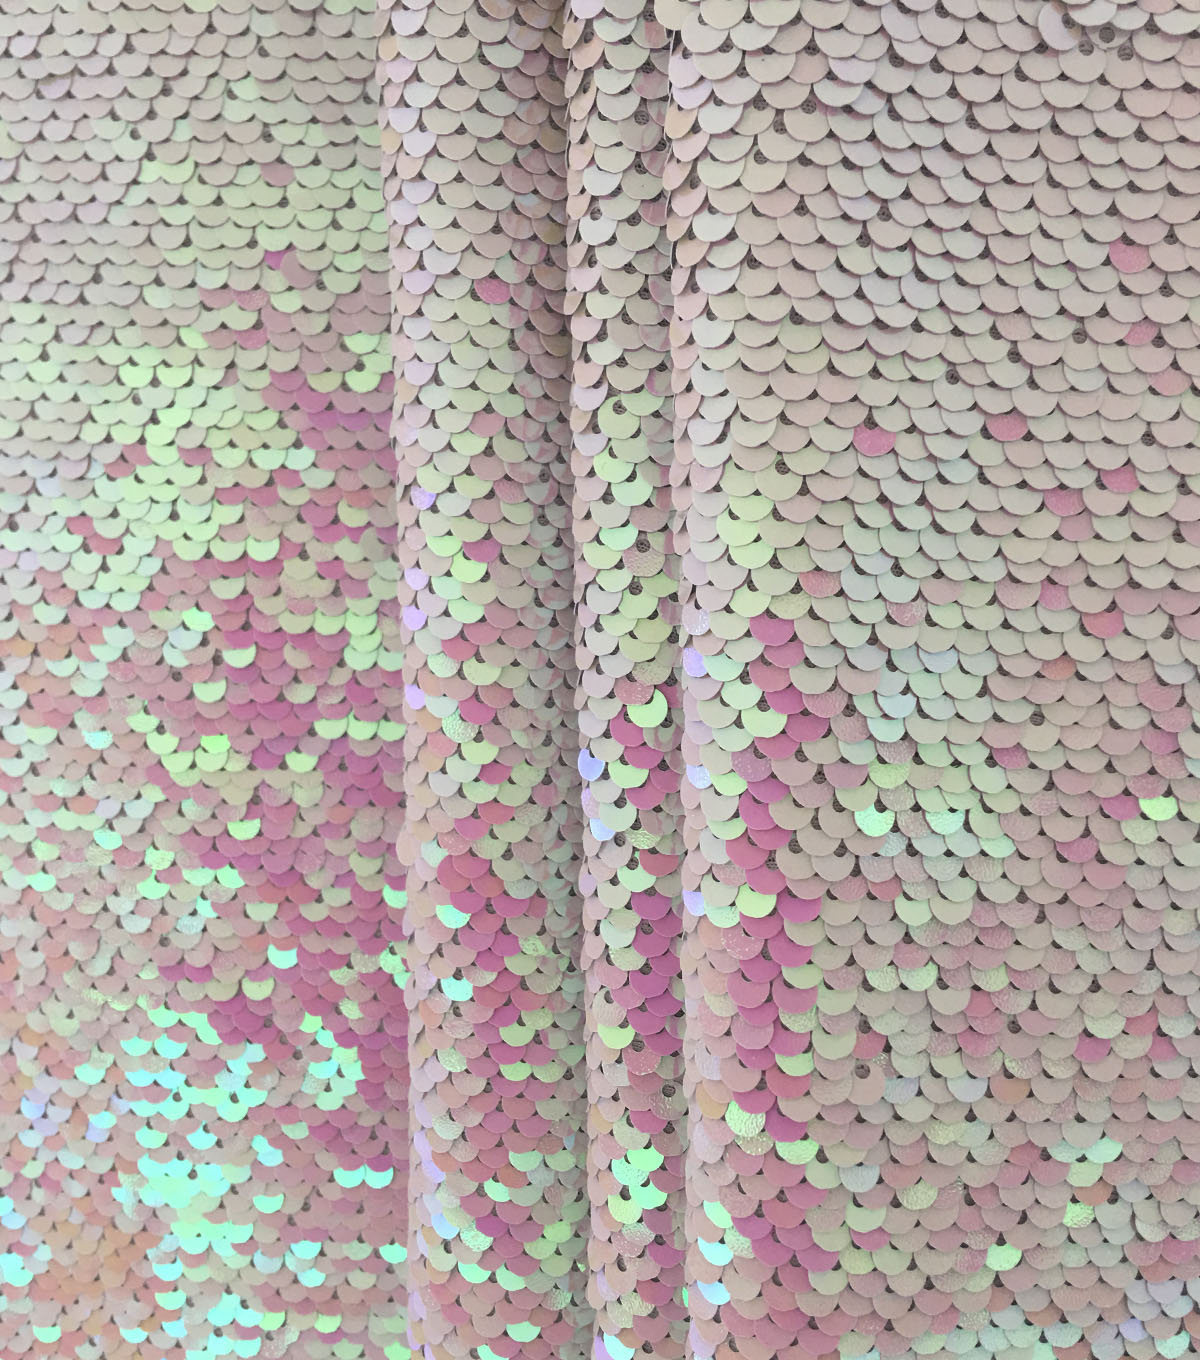 Reversible Sequin Fabric -Silver Holographic & Iridescent